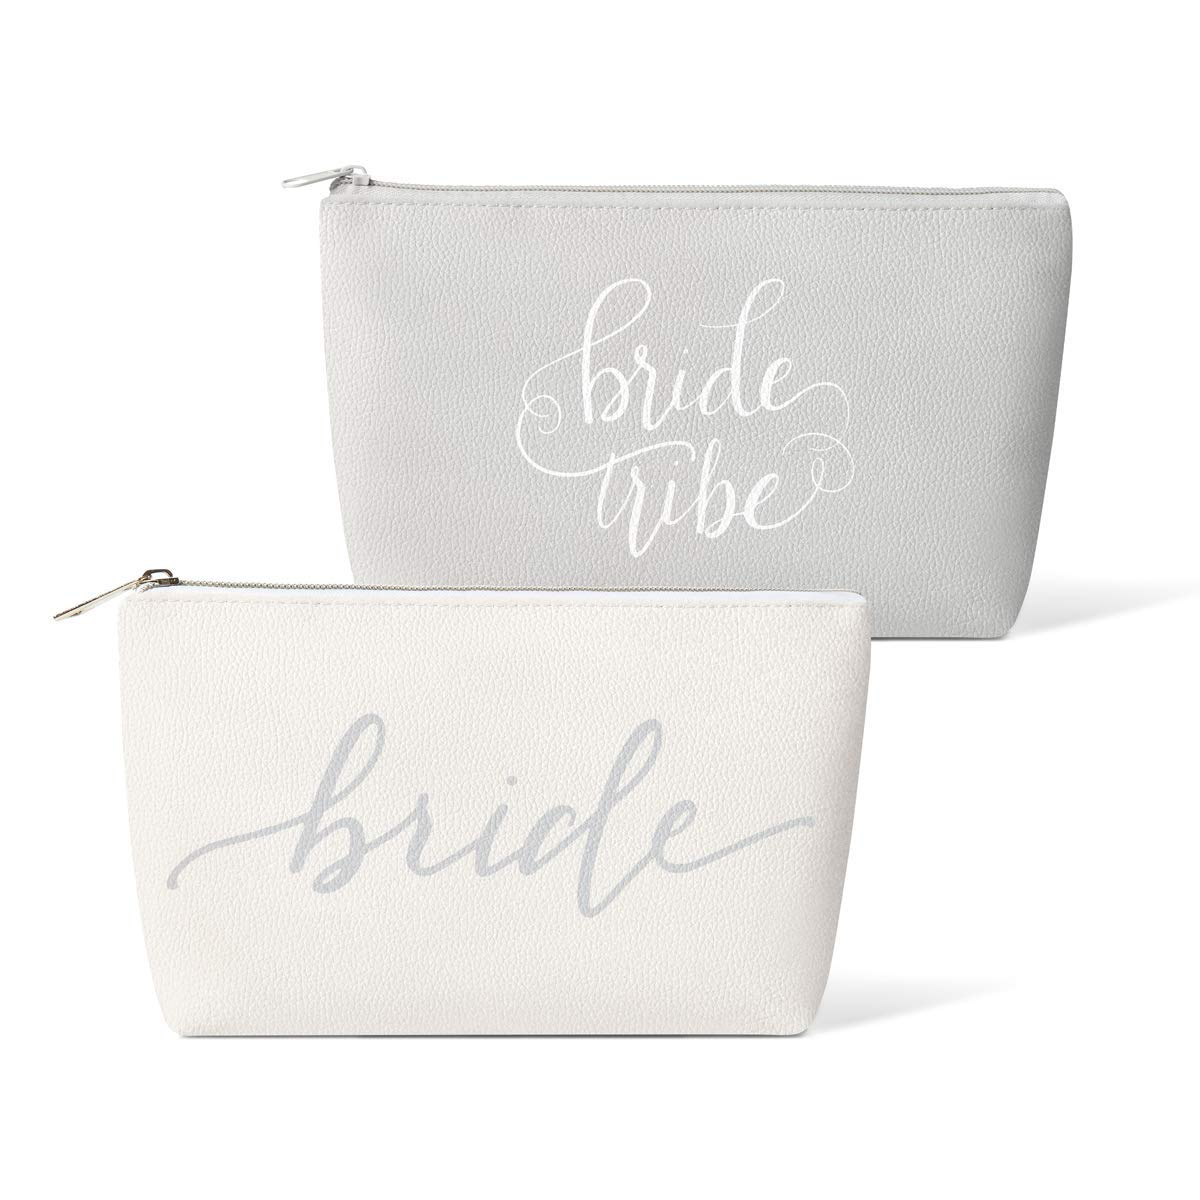 Bridal Party + Bride Makeup Bags – 11 pc Gift Set - Leather Cosmetic Bags for Bachelorette Parties, Weddings, Bridal Showers (Bride Tribe, Grey)